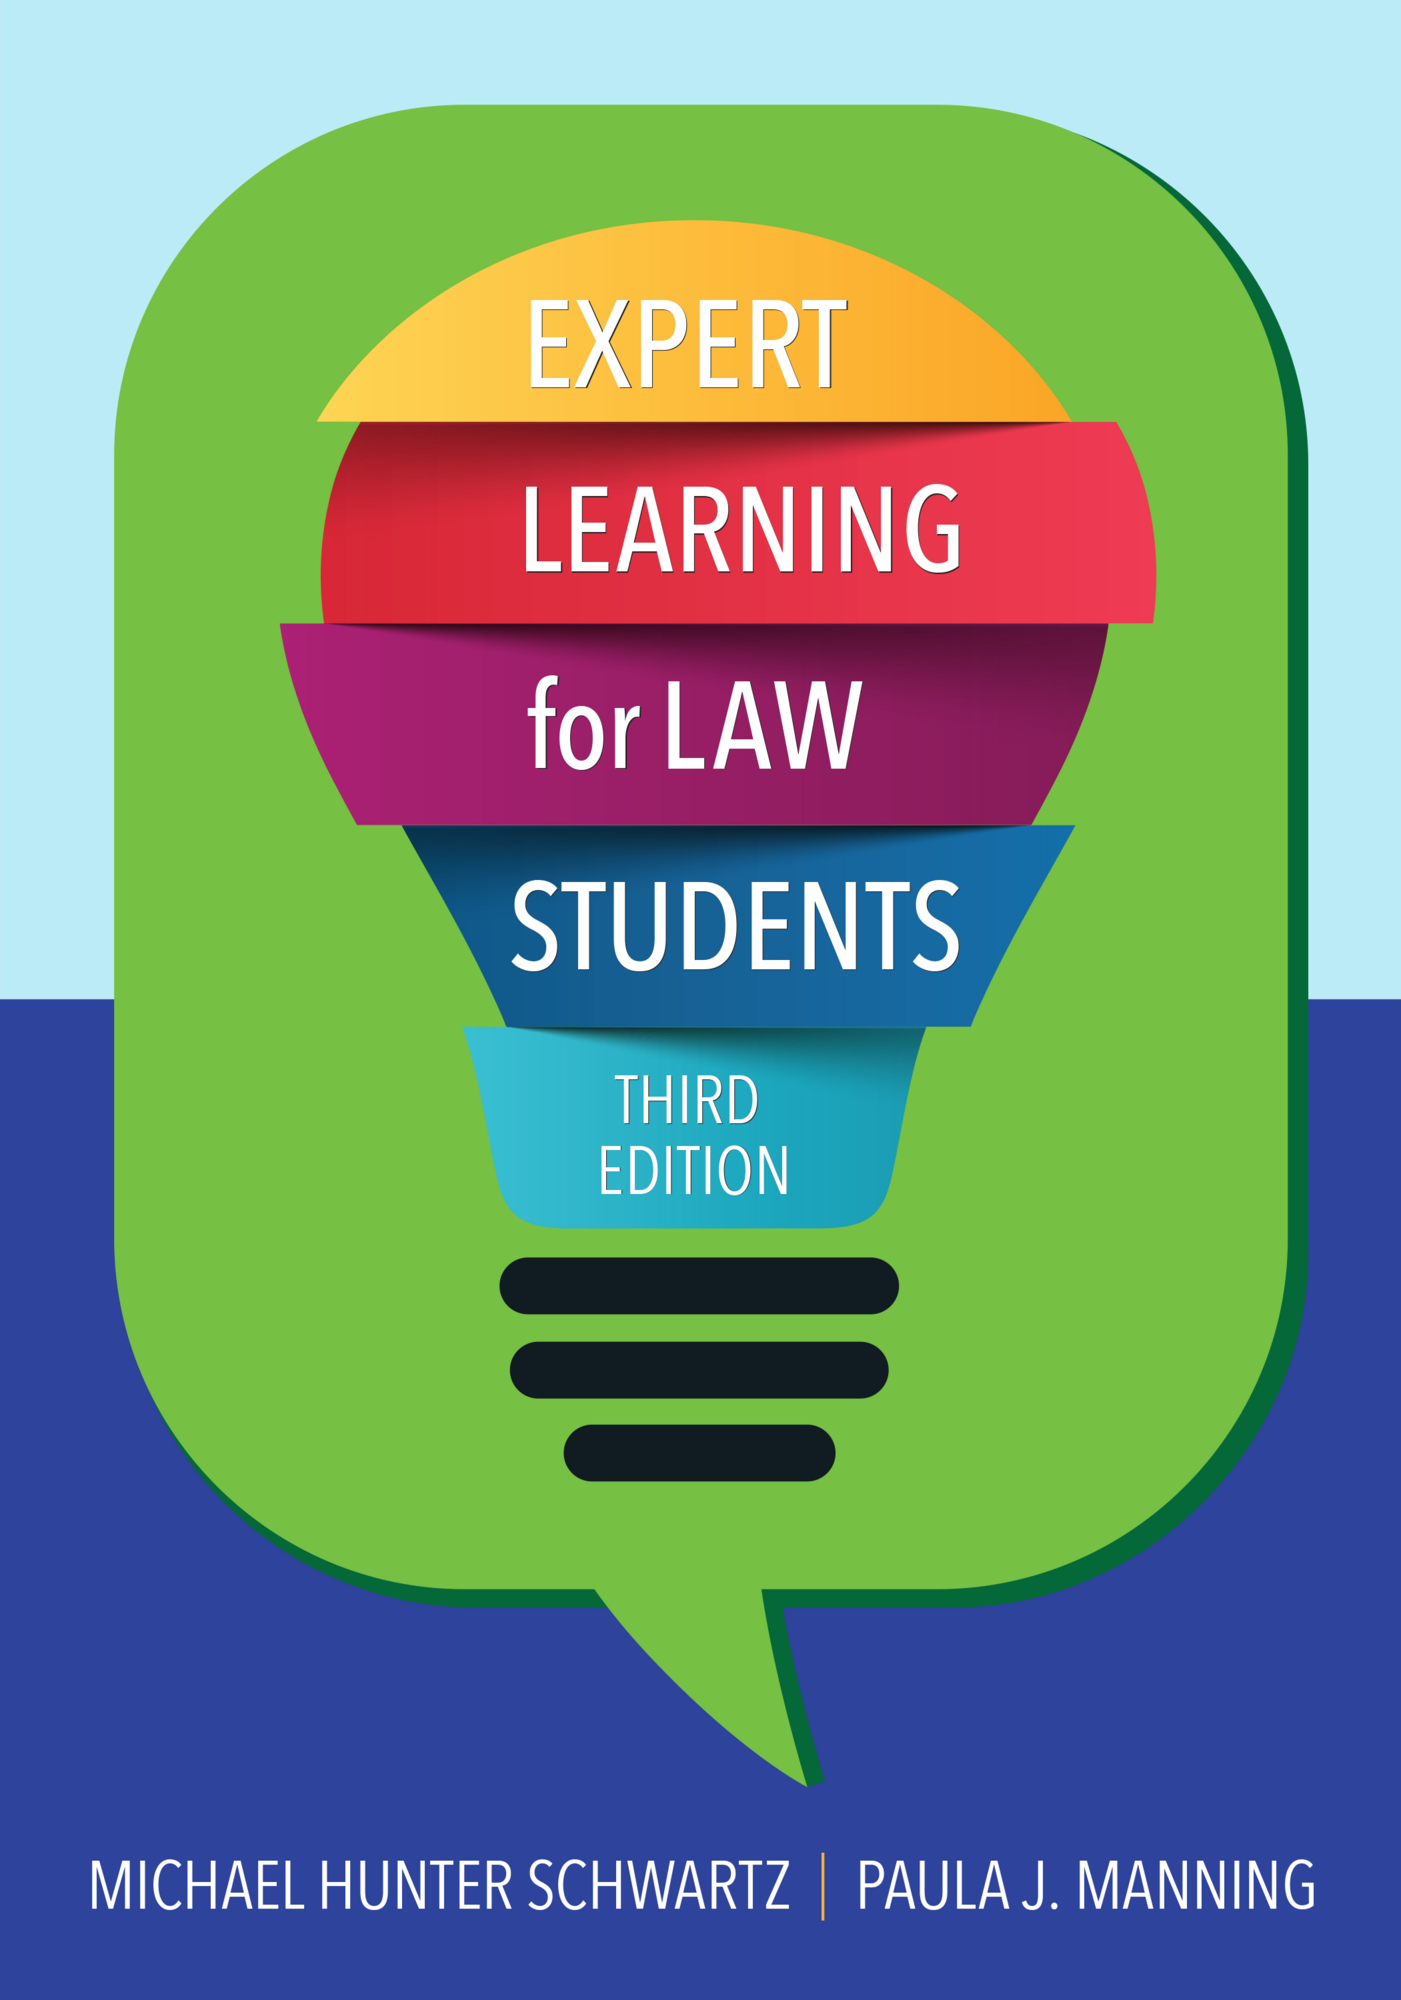 Expert learning for law students cover art